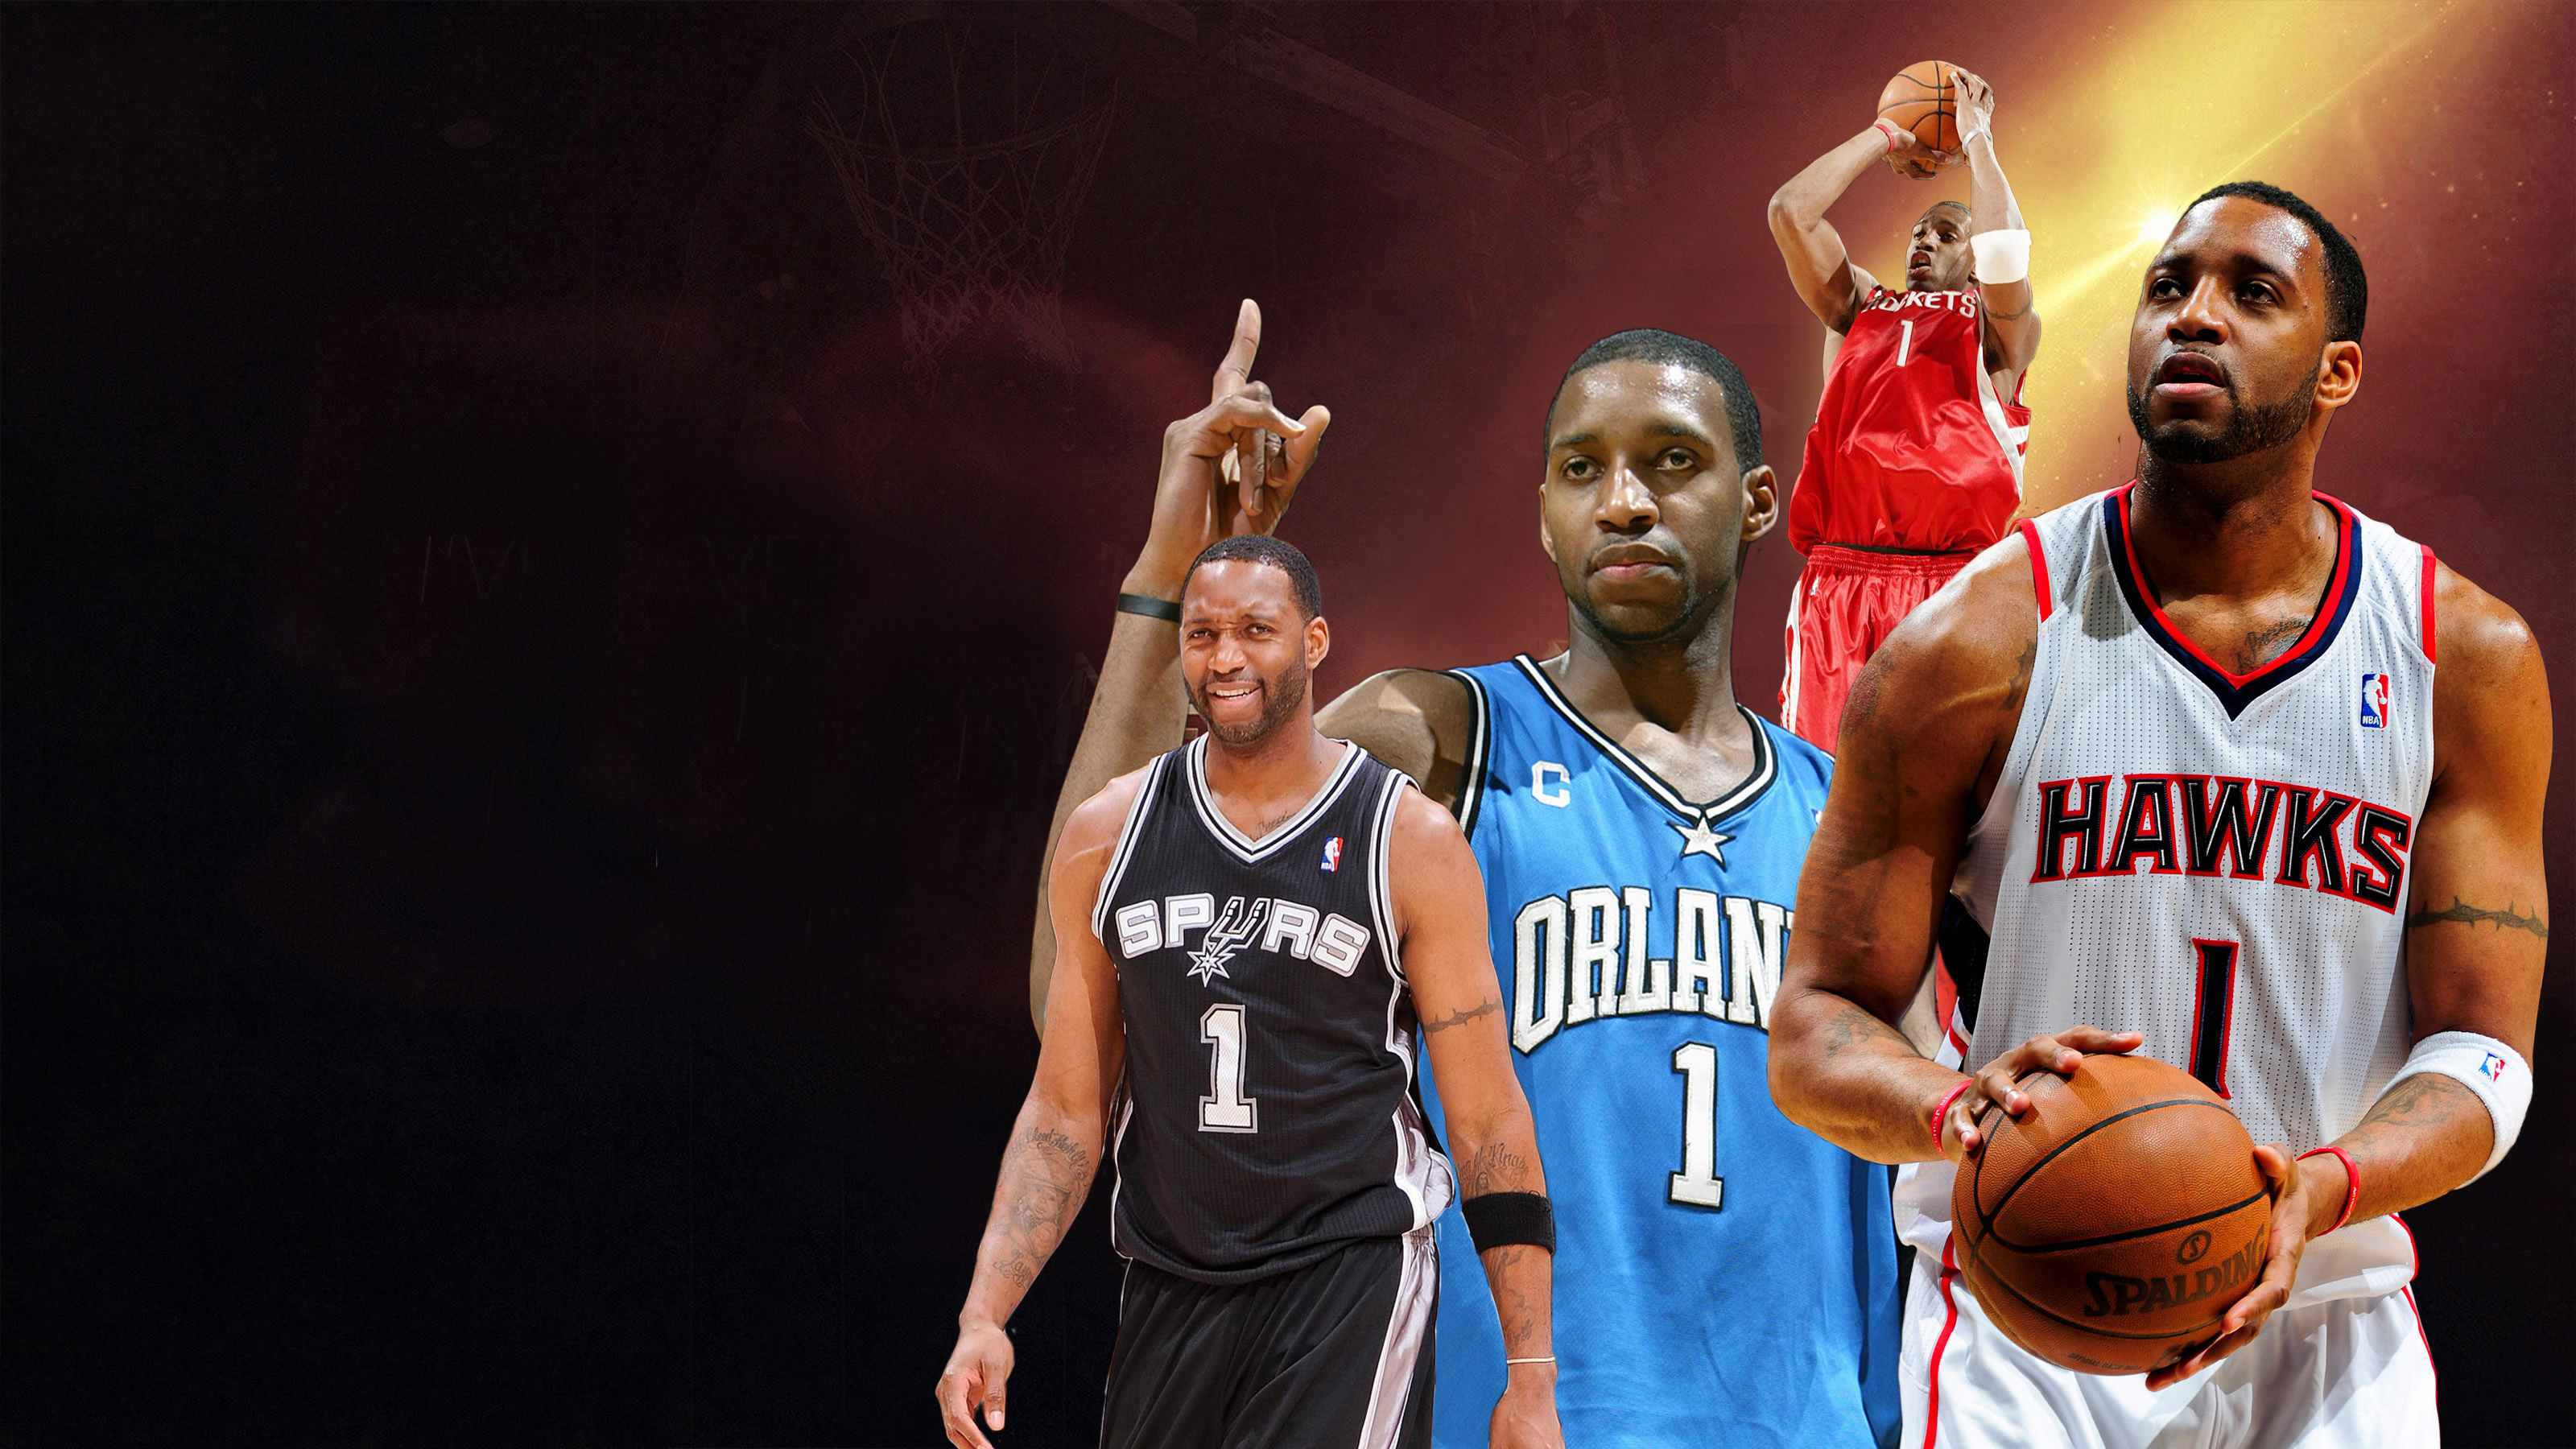 Highlights of NBA standout player Tracy McGrady the ing Hall of